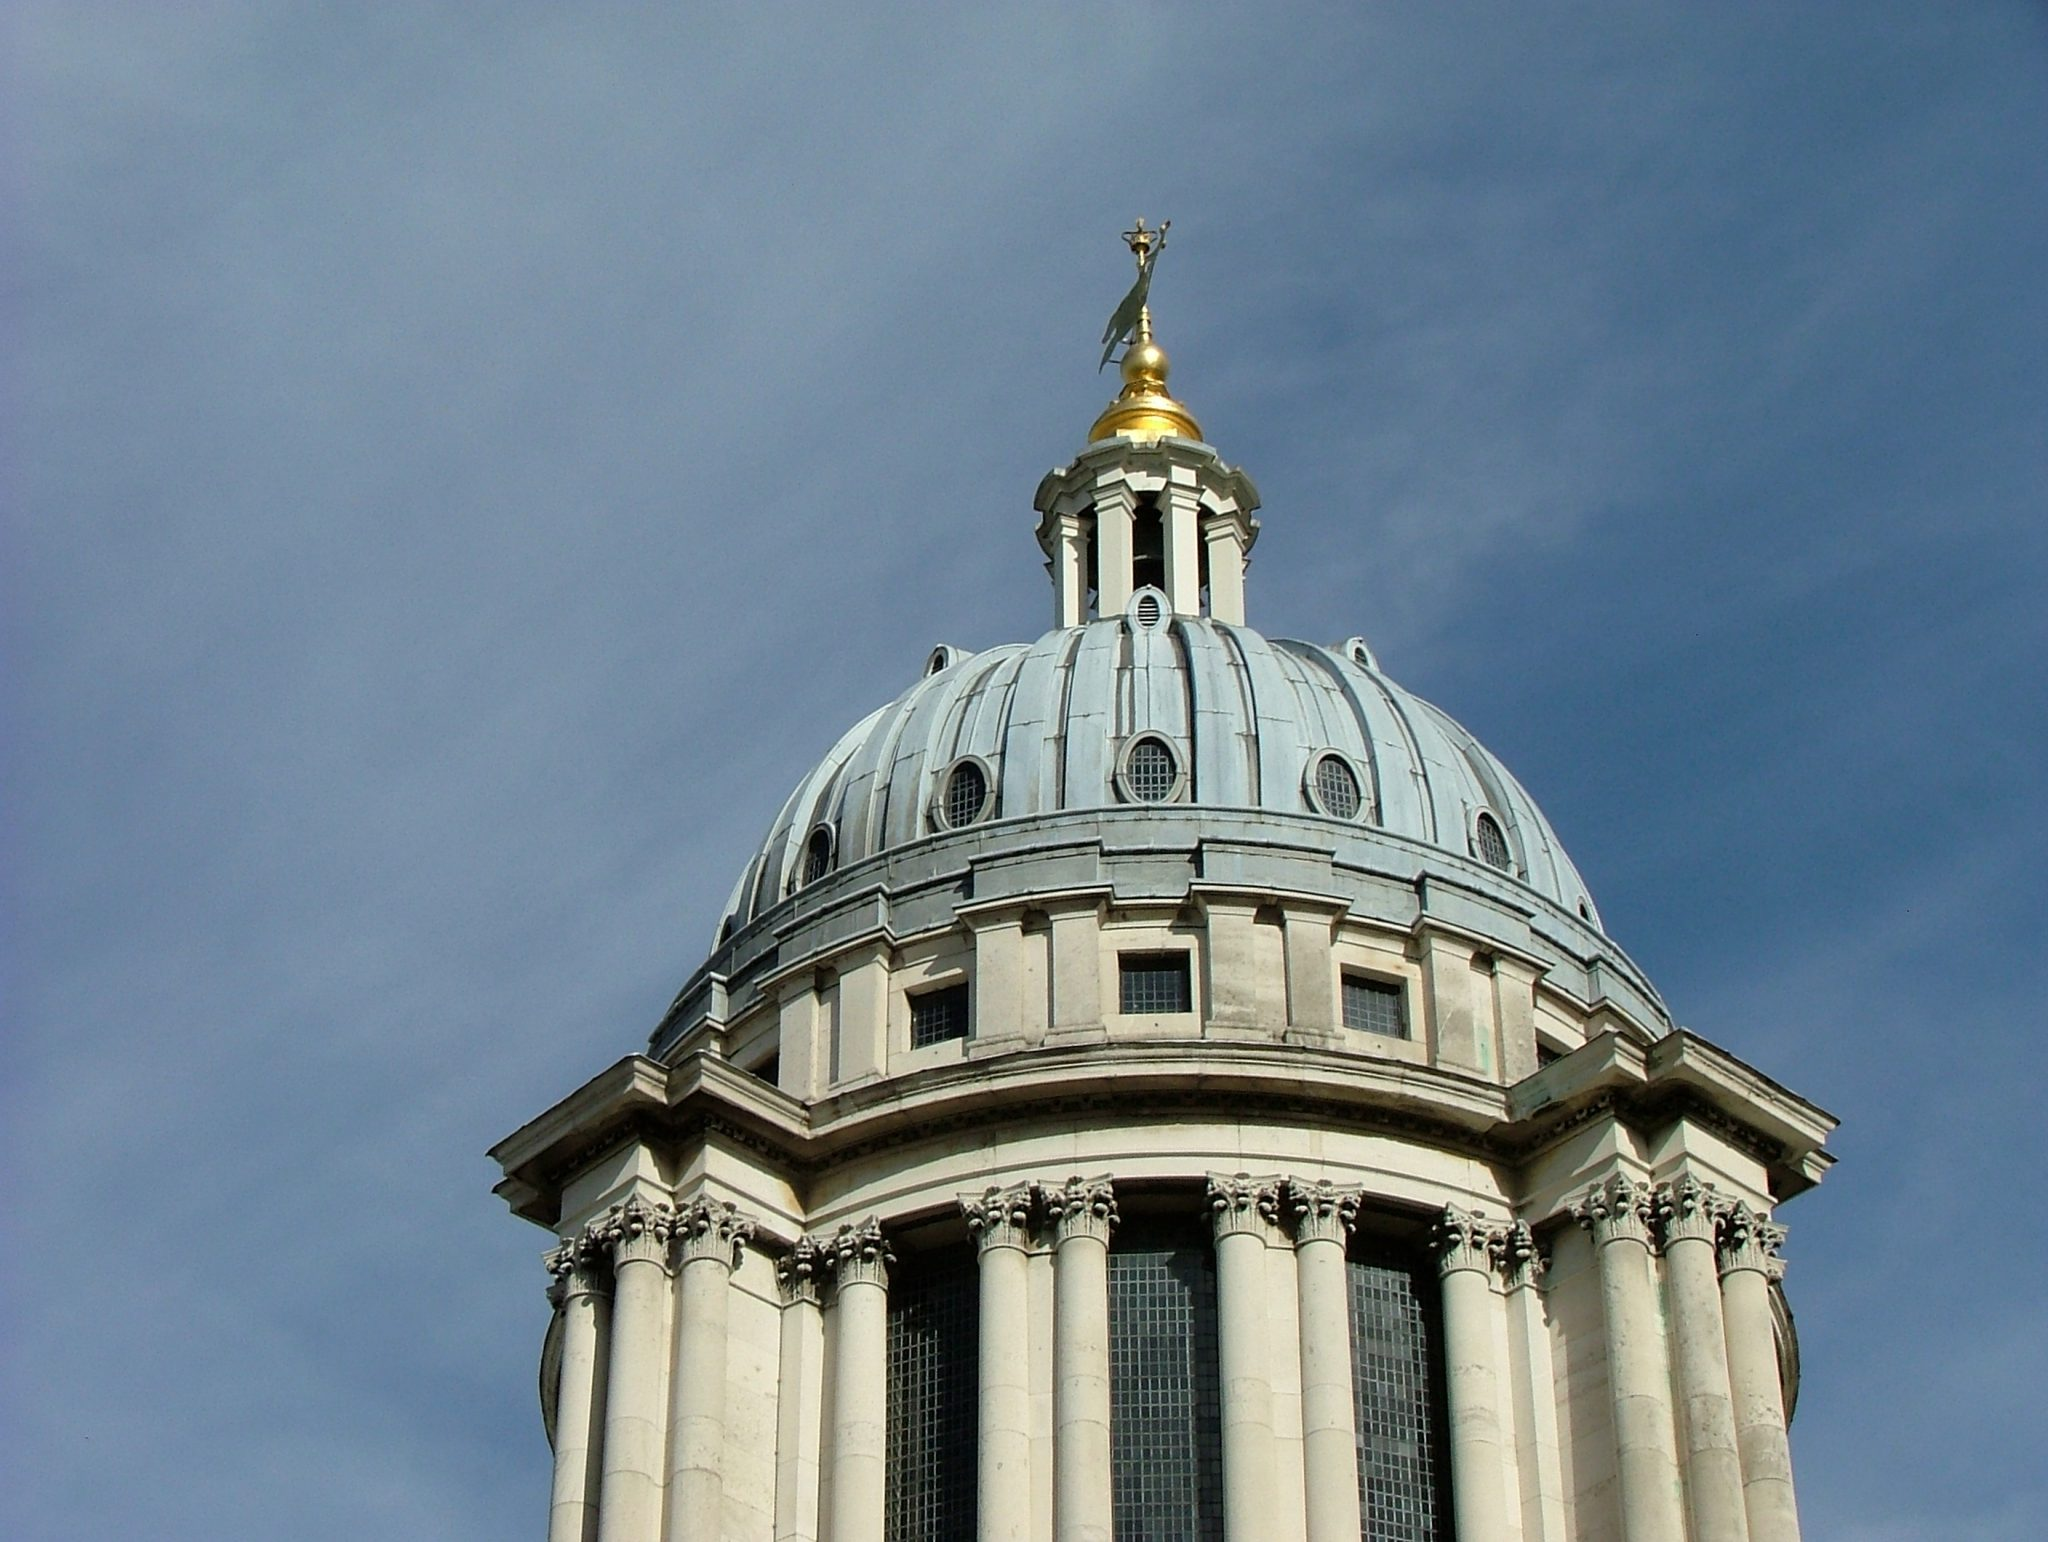 Christopher Wren's glorious dome capping Queen Mary Court. AG